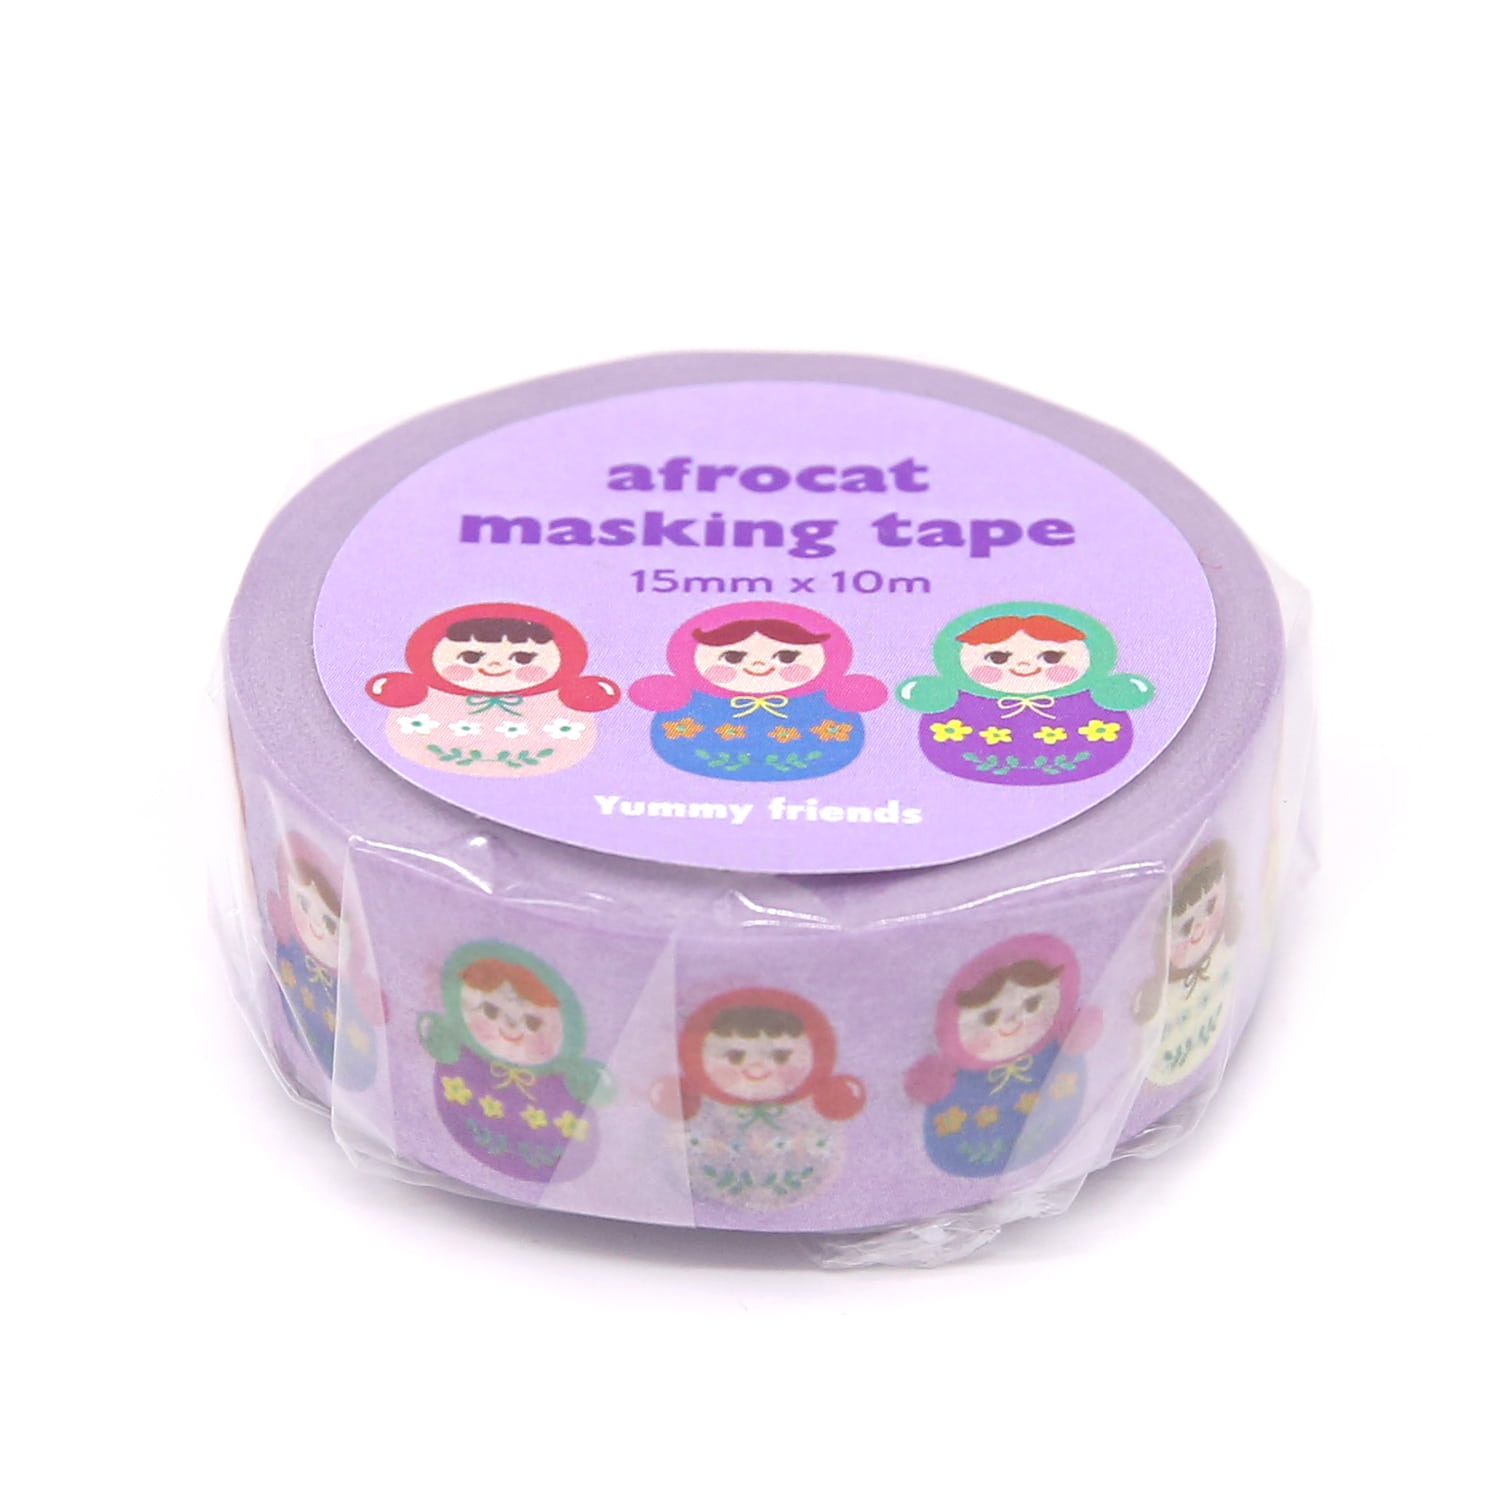 [afrocat masking tape] 13. Yammy friends _ matroyshka 15mm